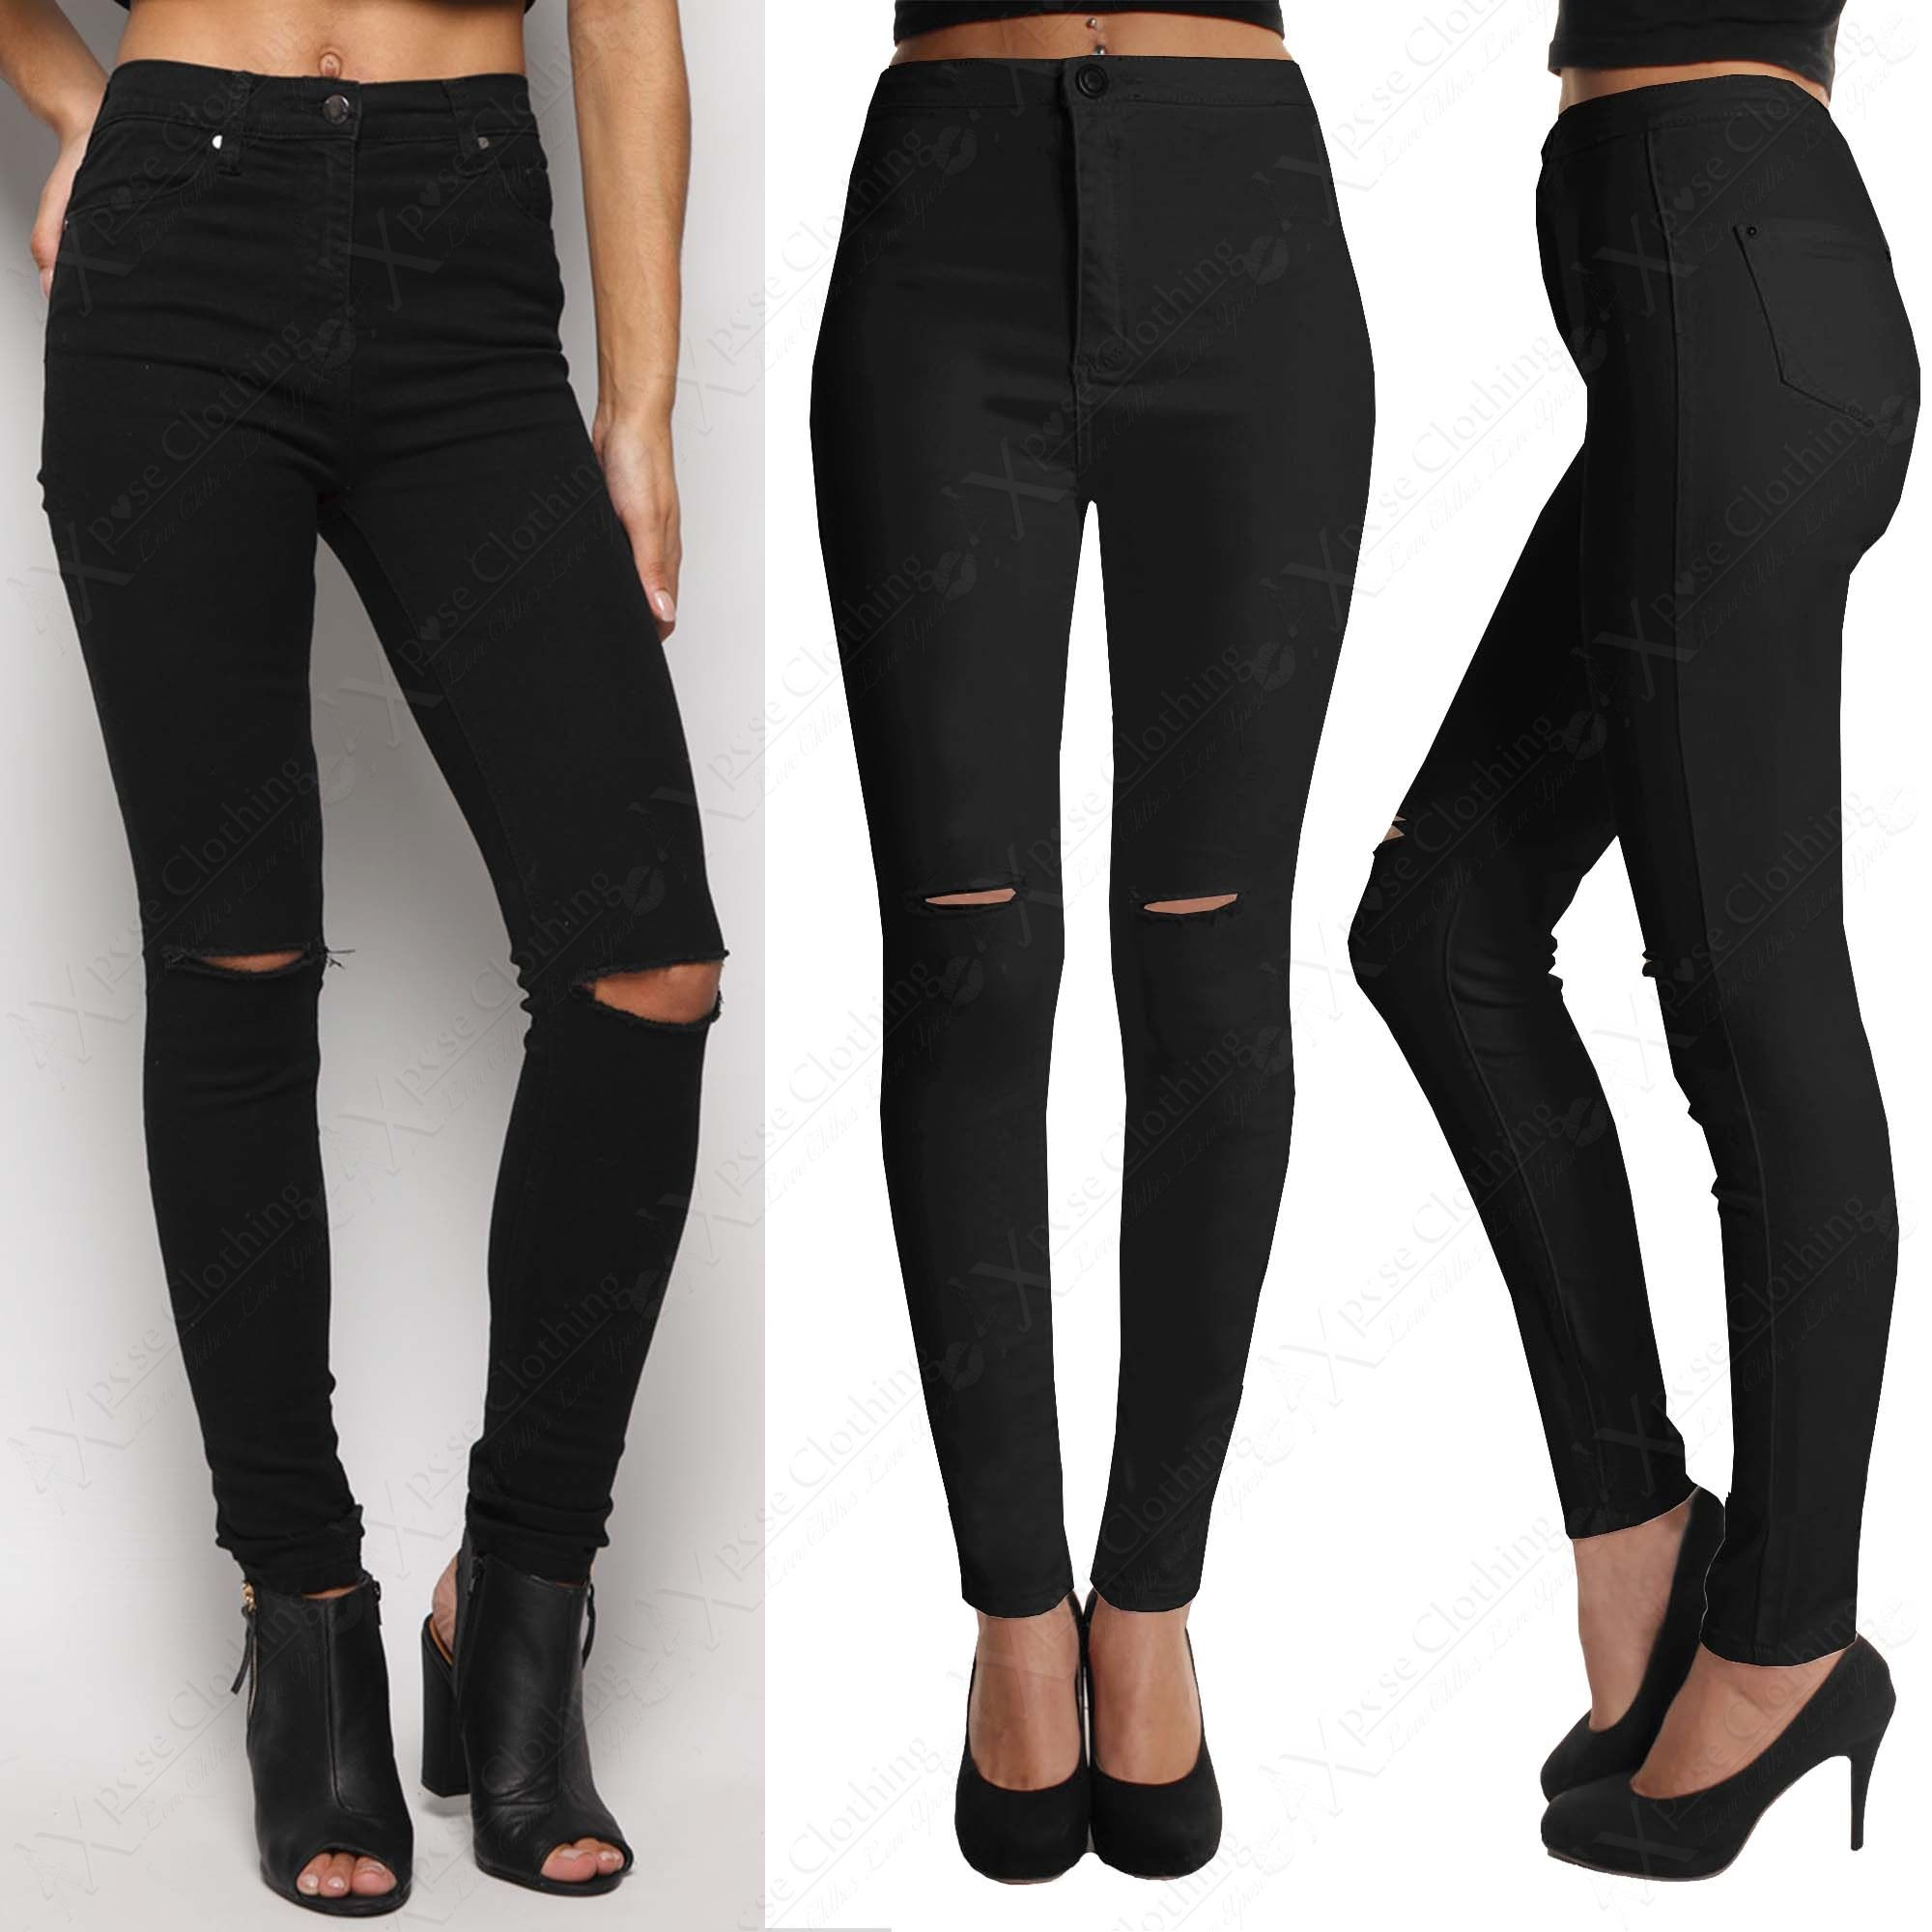 Womens black ripped jeans | Jeans | Pinterest | Ripped knee jeans Black ripped jeans and Ripped ...